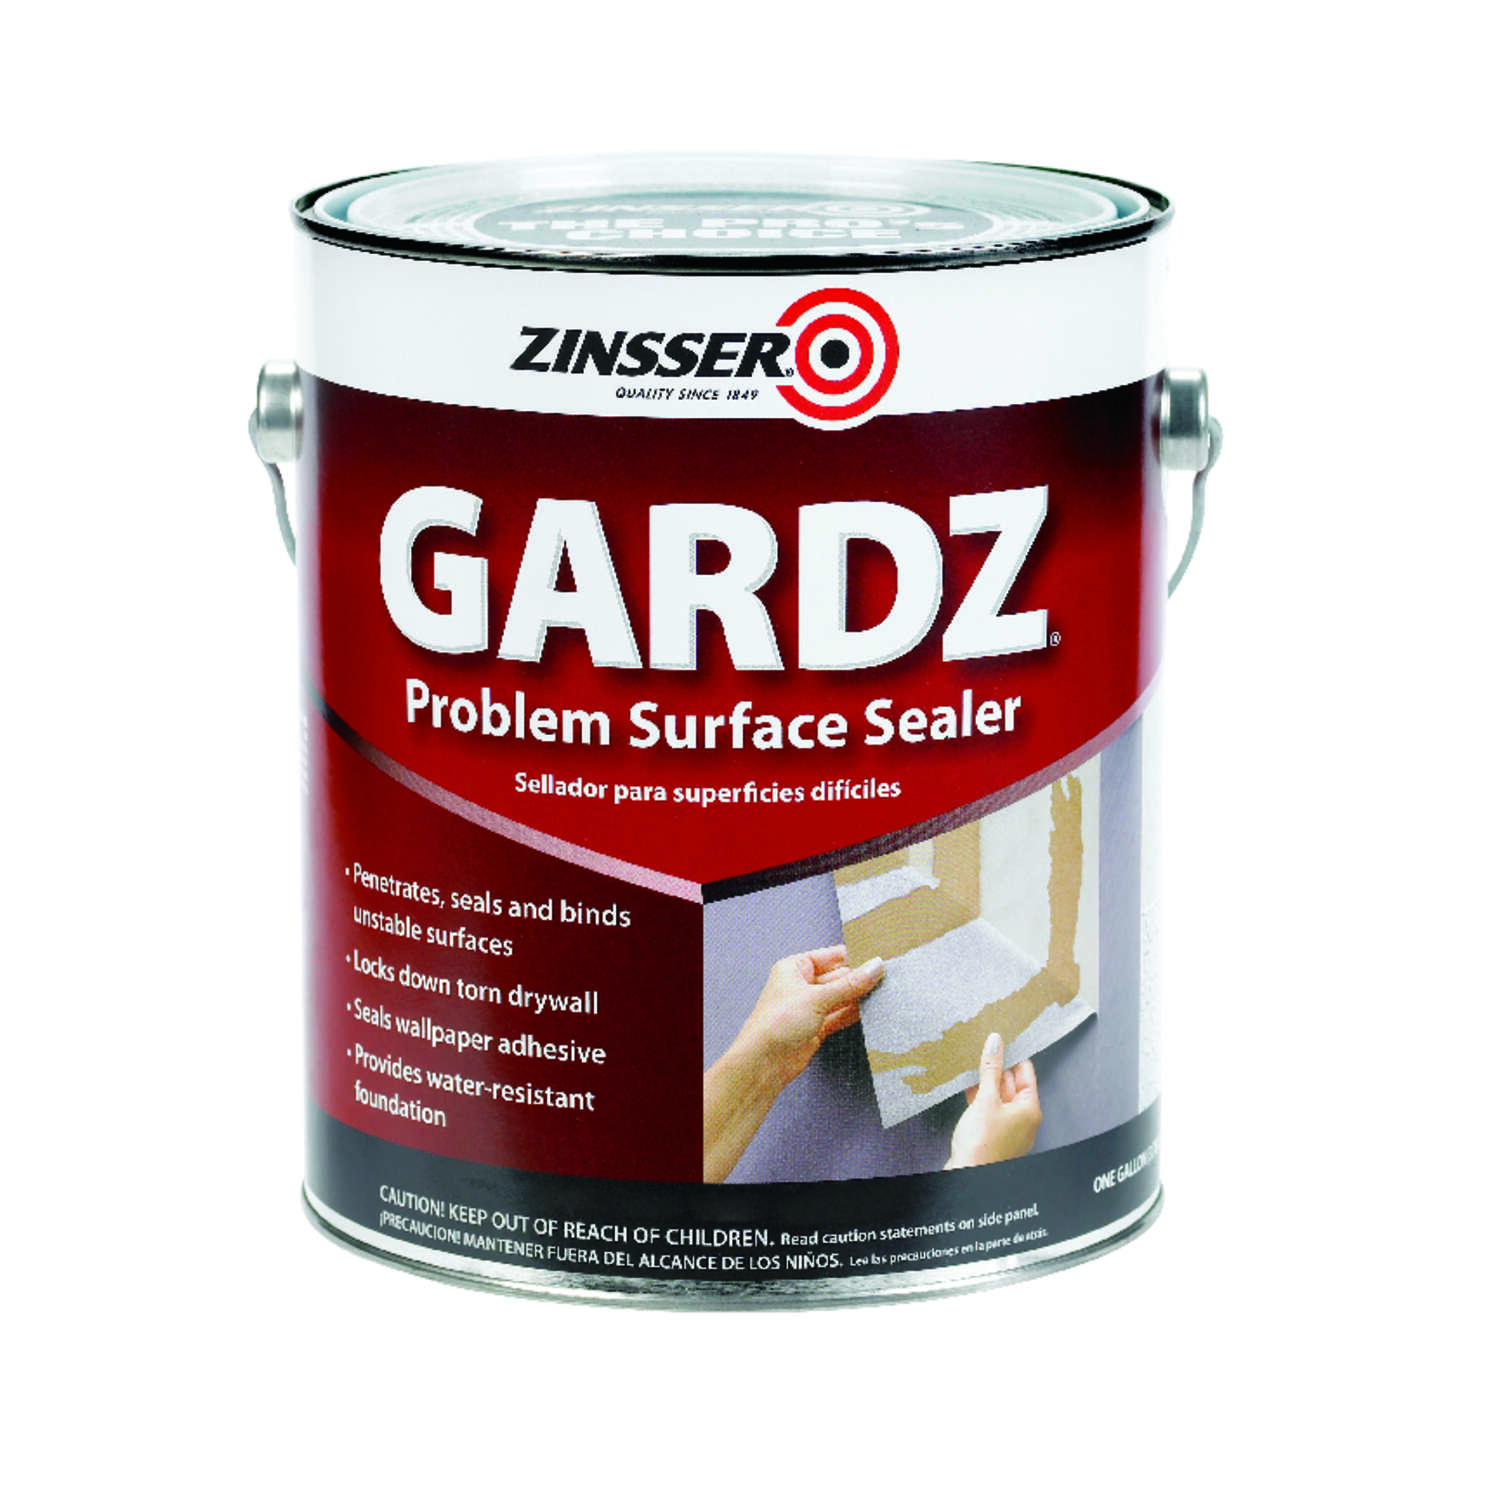 Zinsser  Gardz  Clear  Matte  Problem Surface Sealer  1 gal.